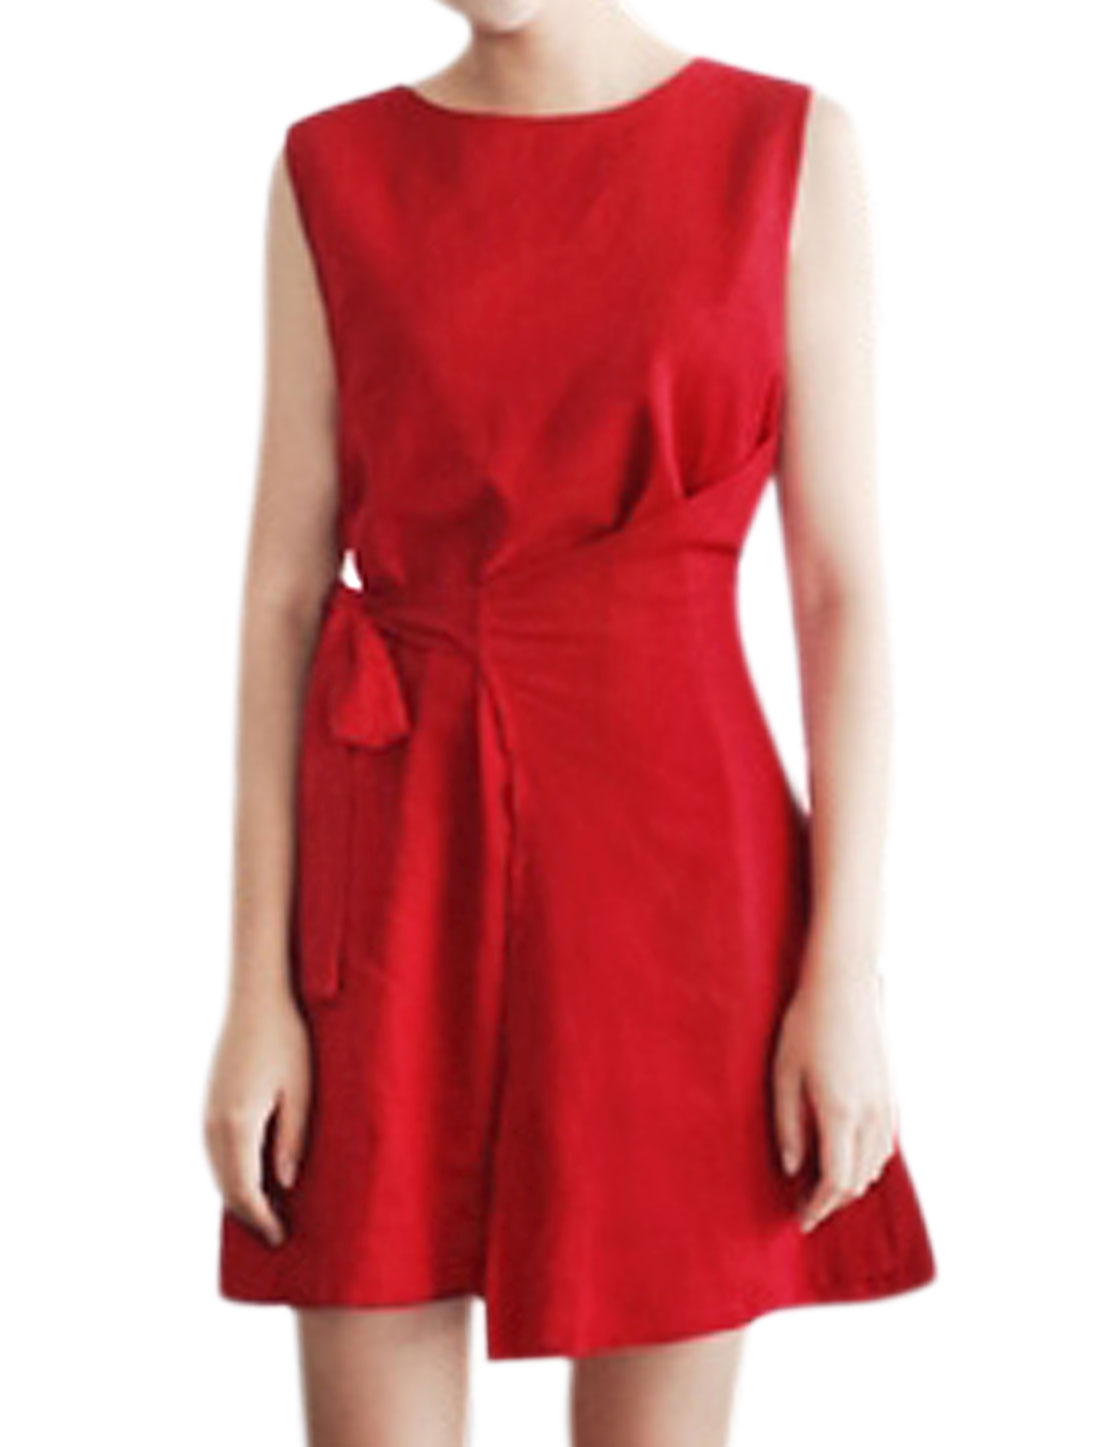 Women Sleeveless Round Neck Overlay Front Belted Tunic Dress Red XS